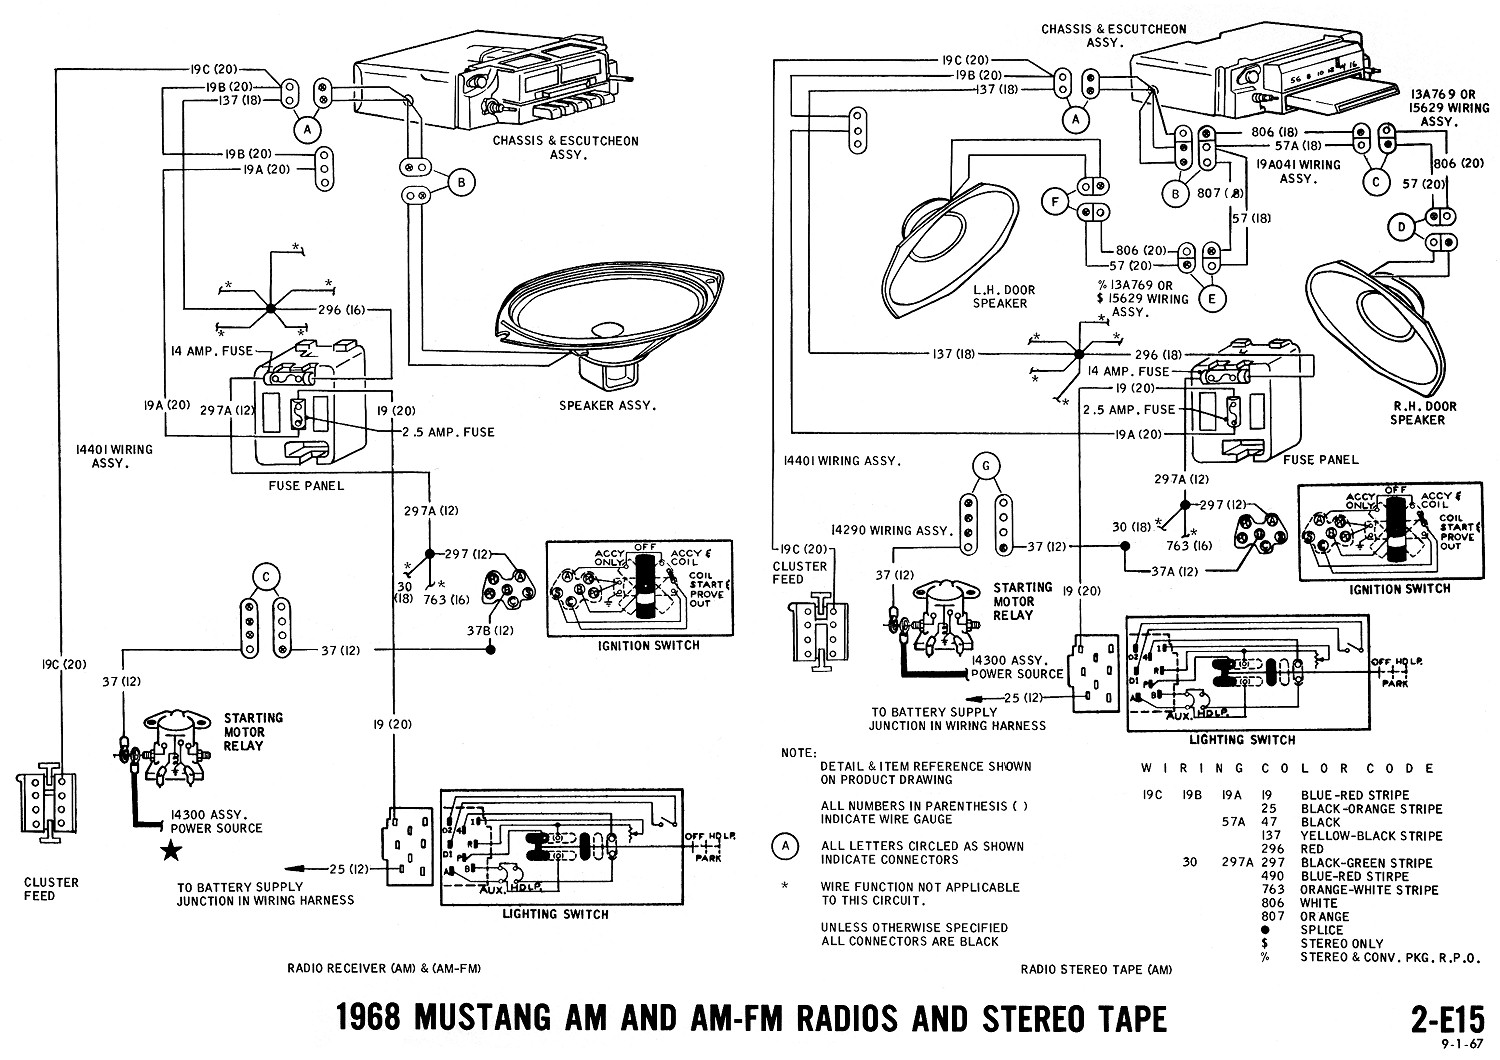 1968 mustang wiring diagrams evolving software 2015 mustang speaker wire colors at 2017 Mustang Stereo Wiring Diagram